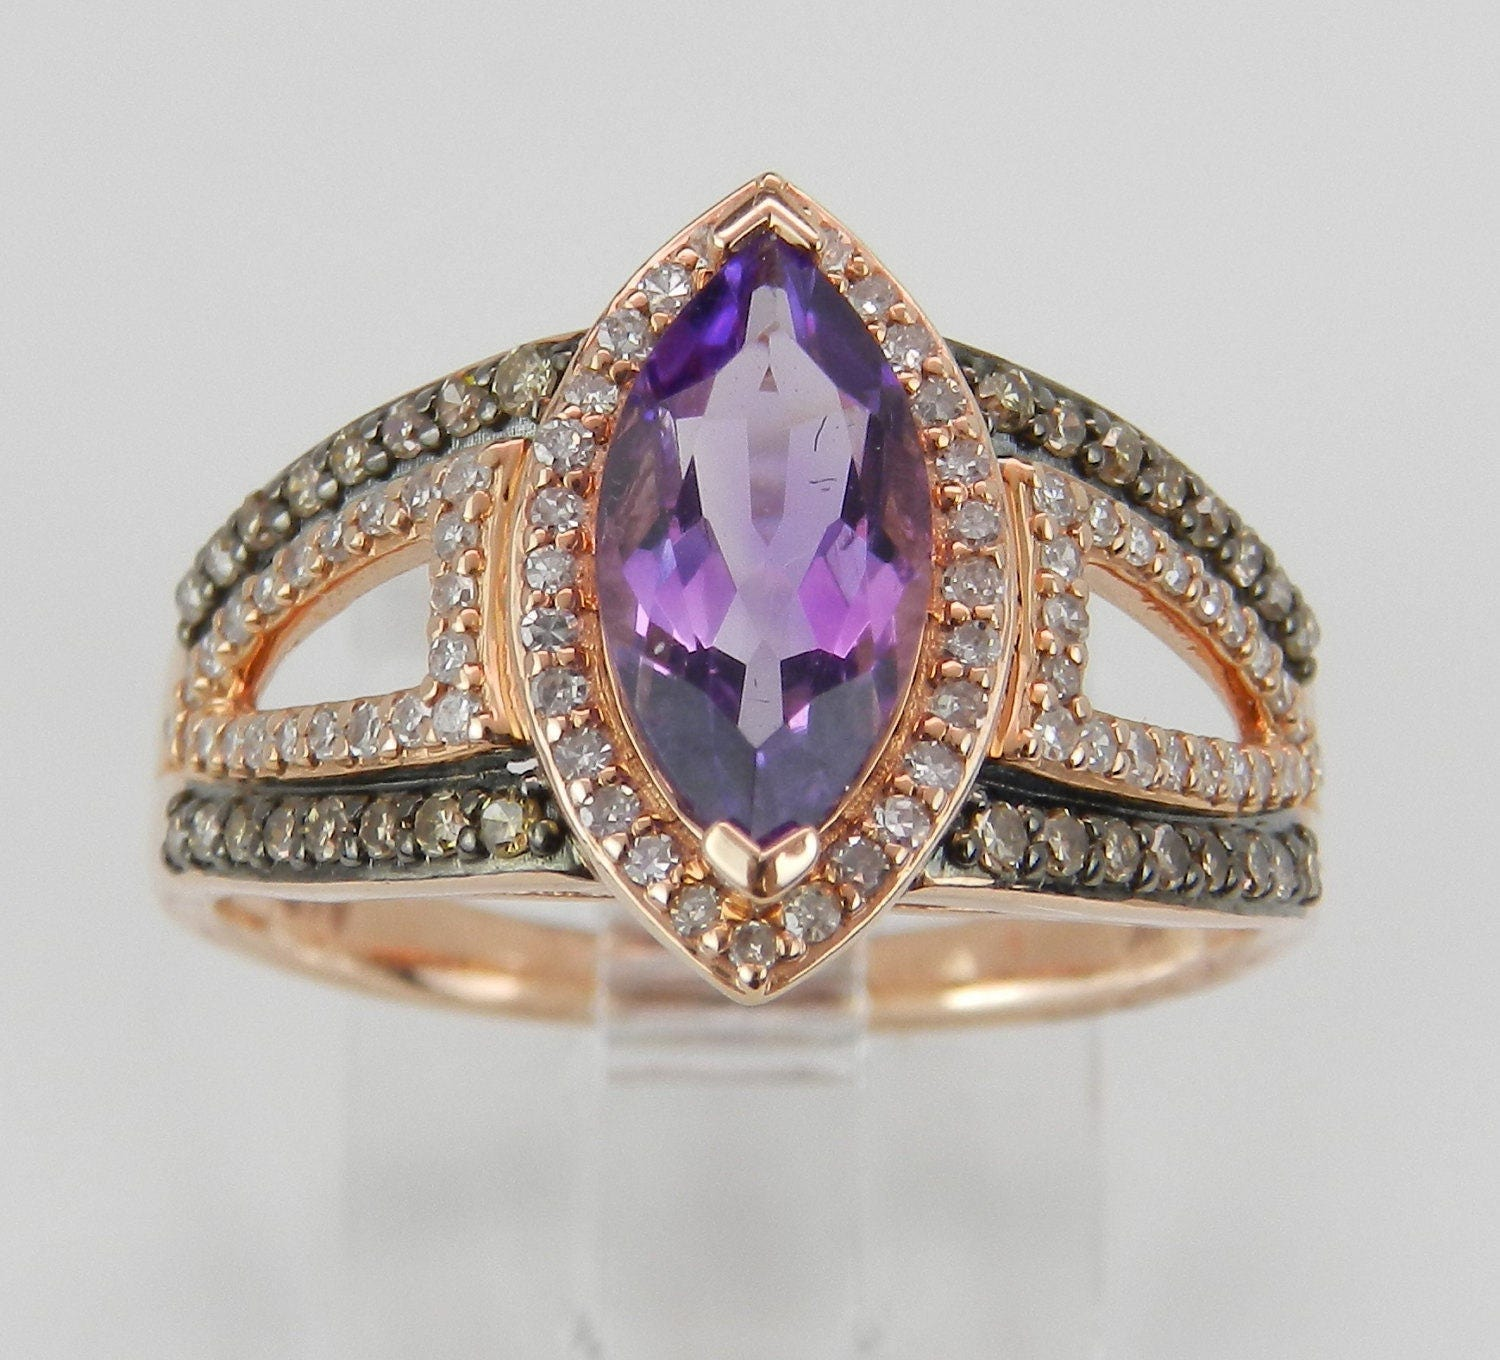 amethyst and cognac diamond halo engagement ring 14k rose gold. Black Bedroom Furniture Sets. Home Design Ideas